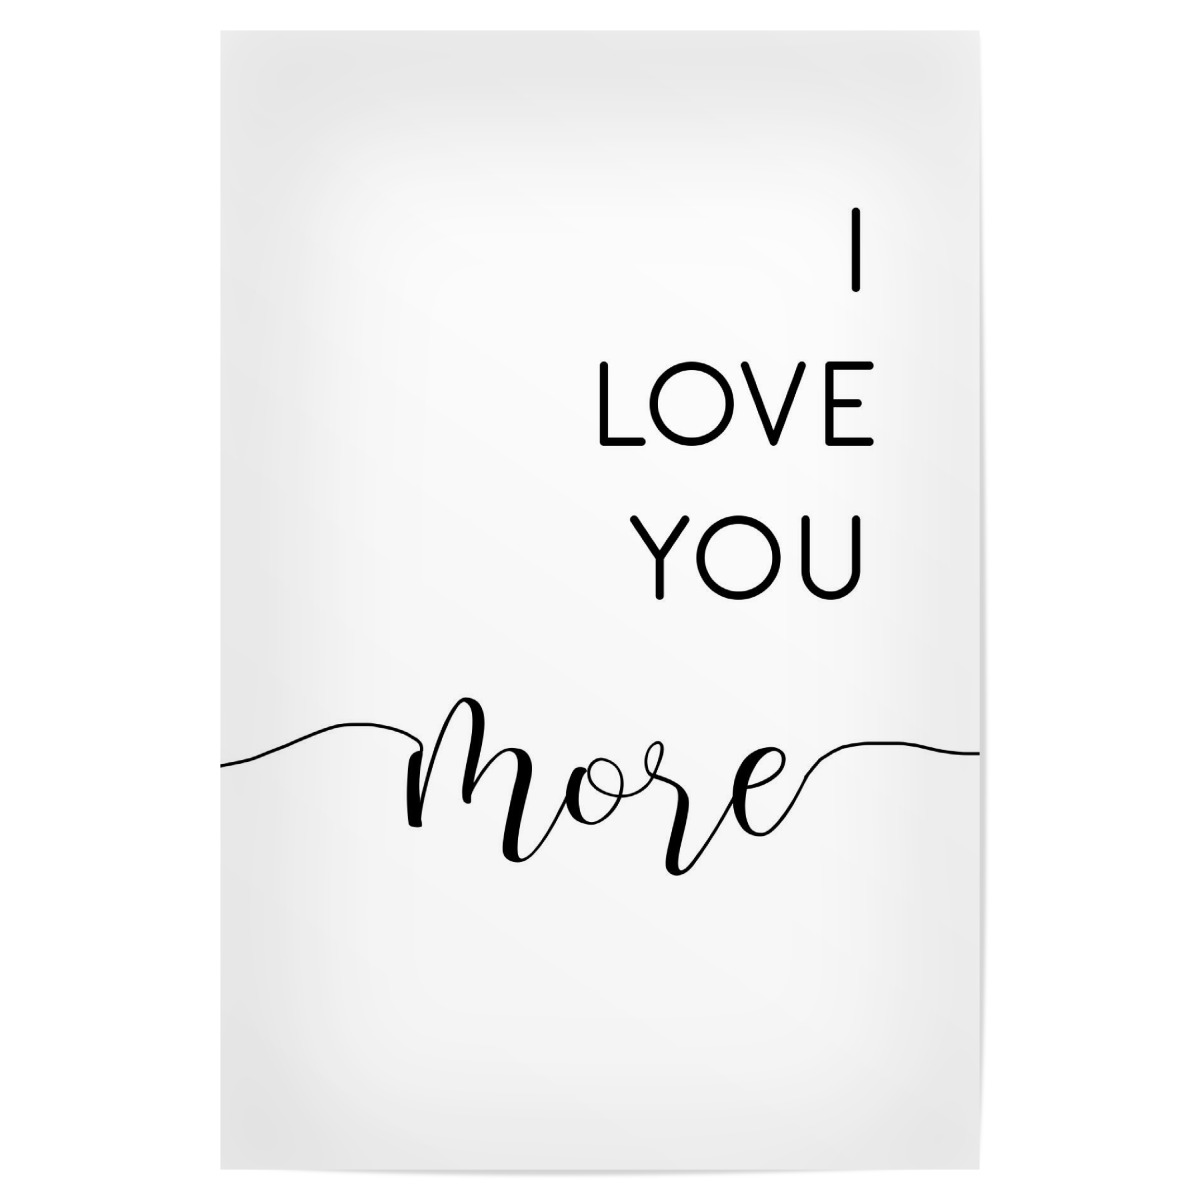 i love you more 30x20 cm poster